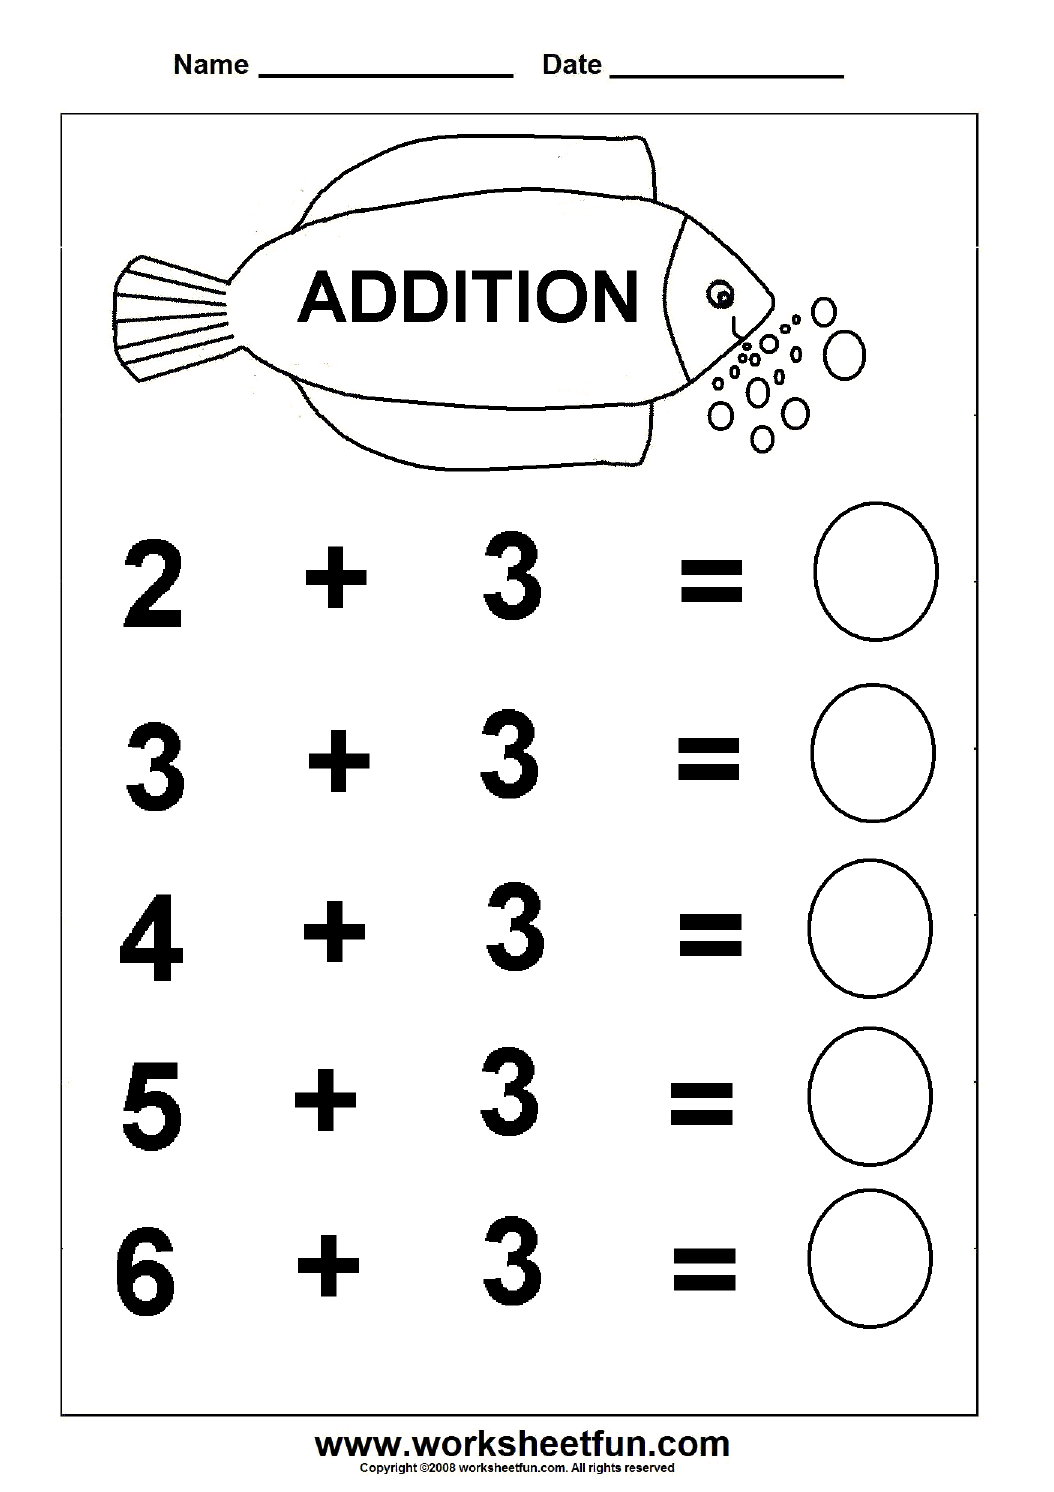 worksheet Pan Balance Worksheets pan balance worksheet abitlikethis beginner addition 6 kindergarten worksheets free